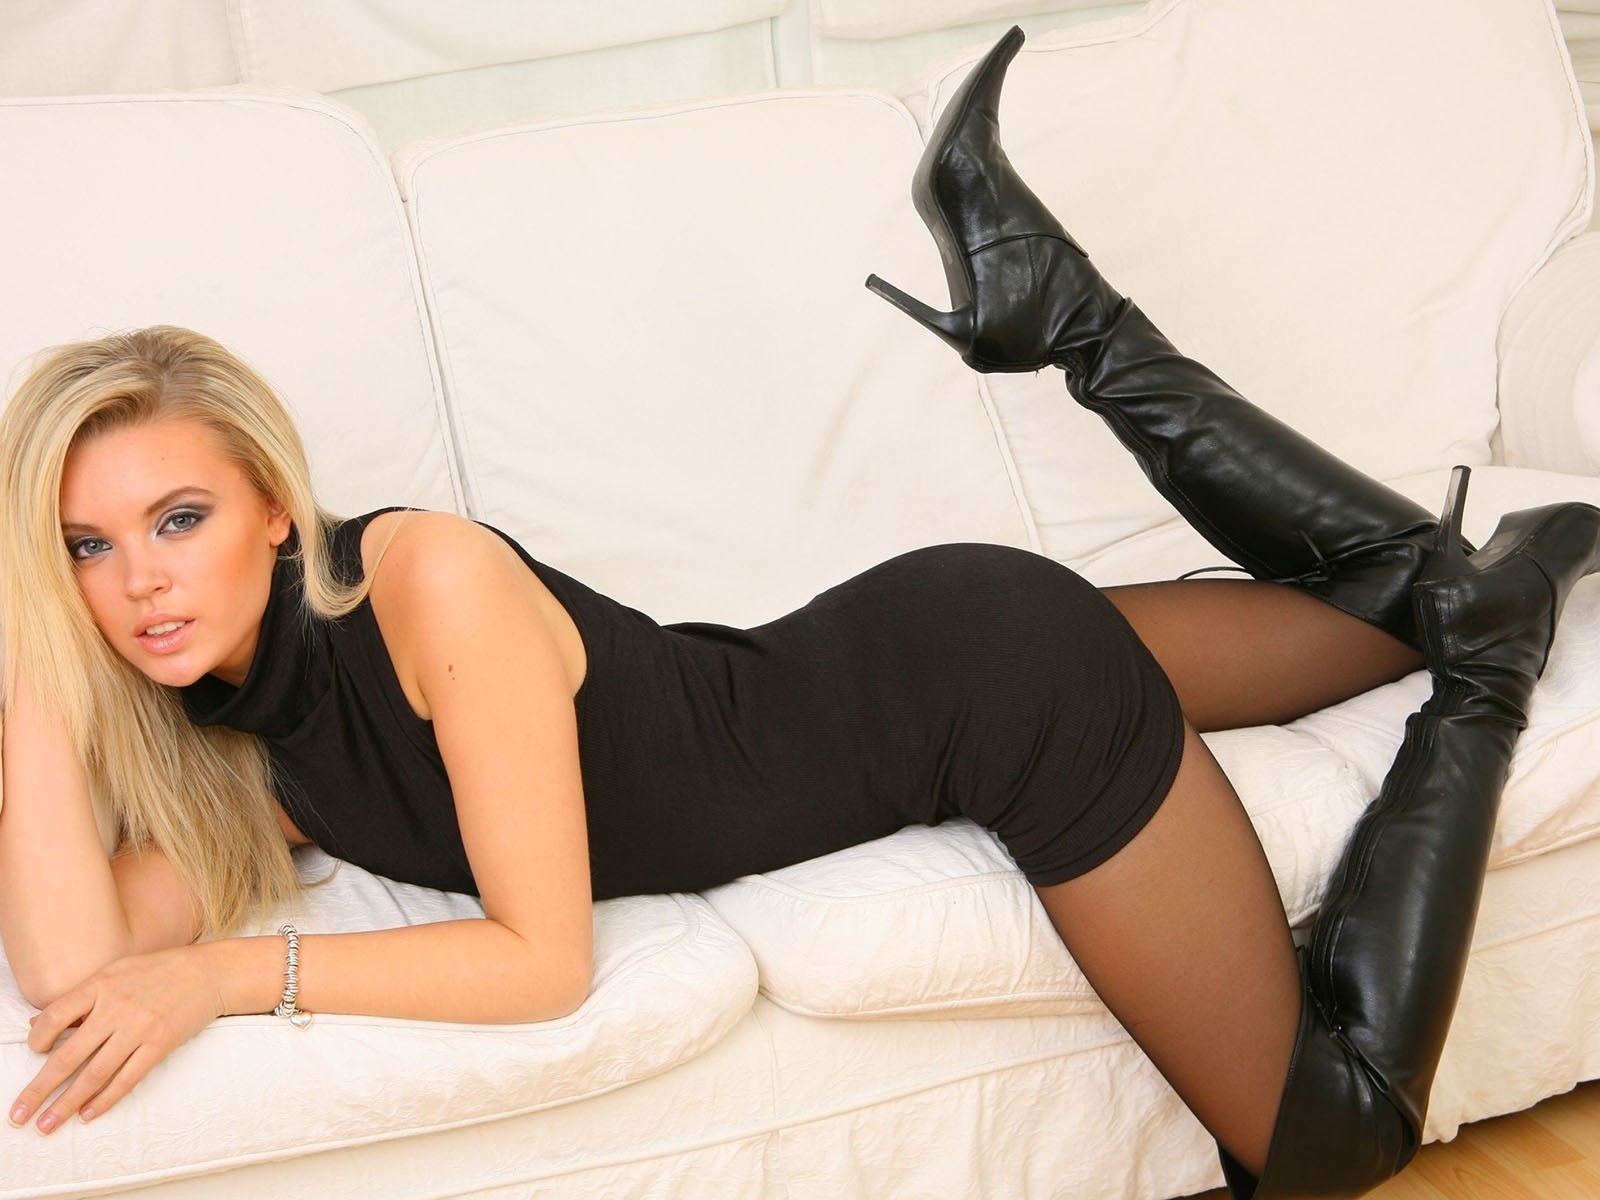 blondes boots leather Women HD Wallpaper